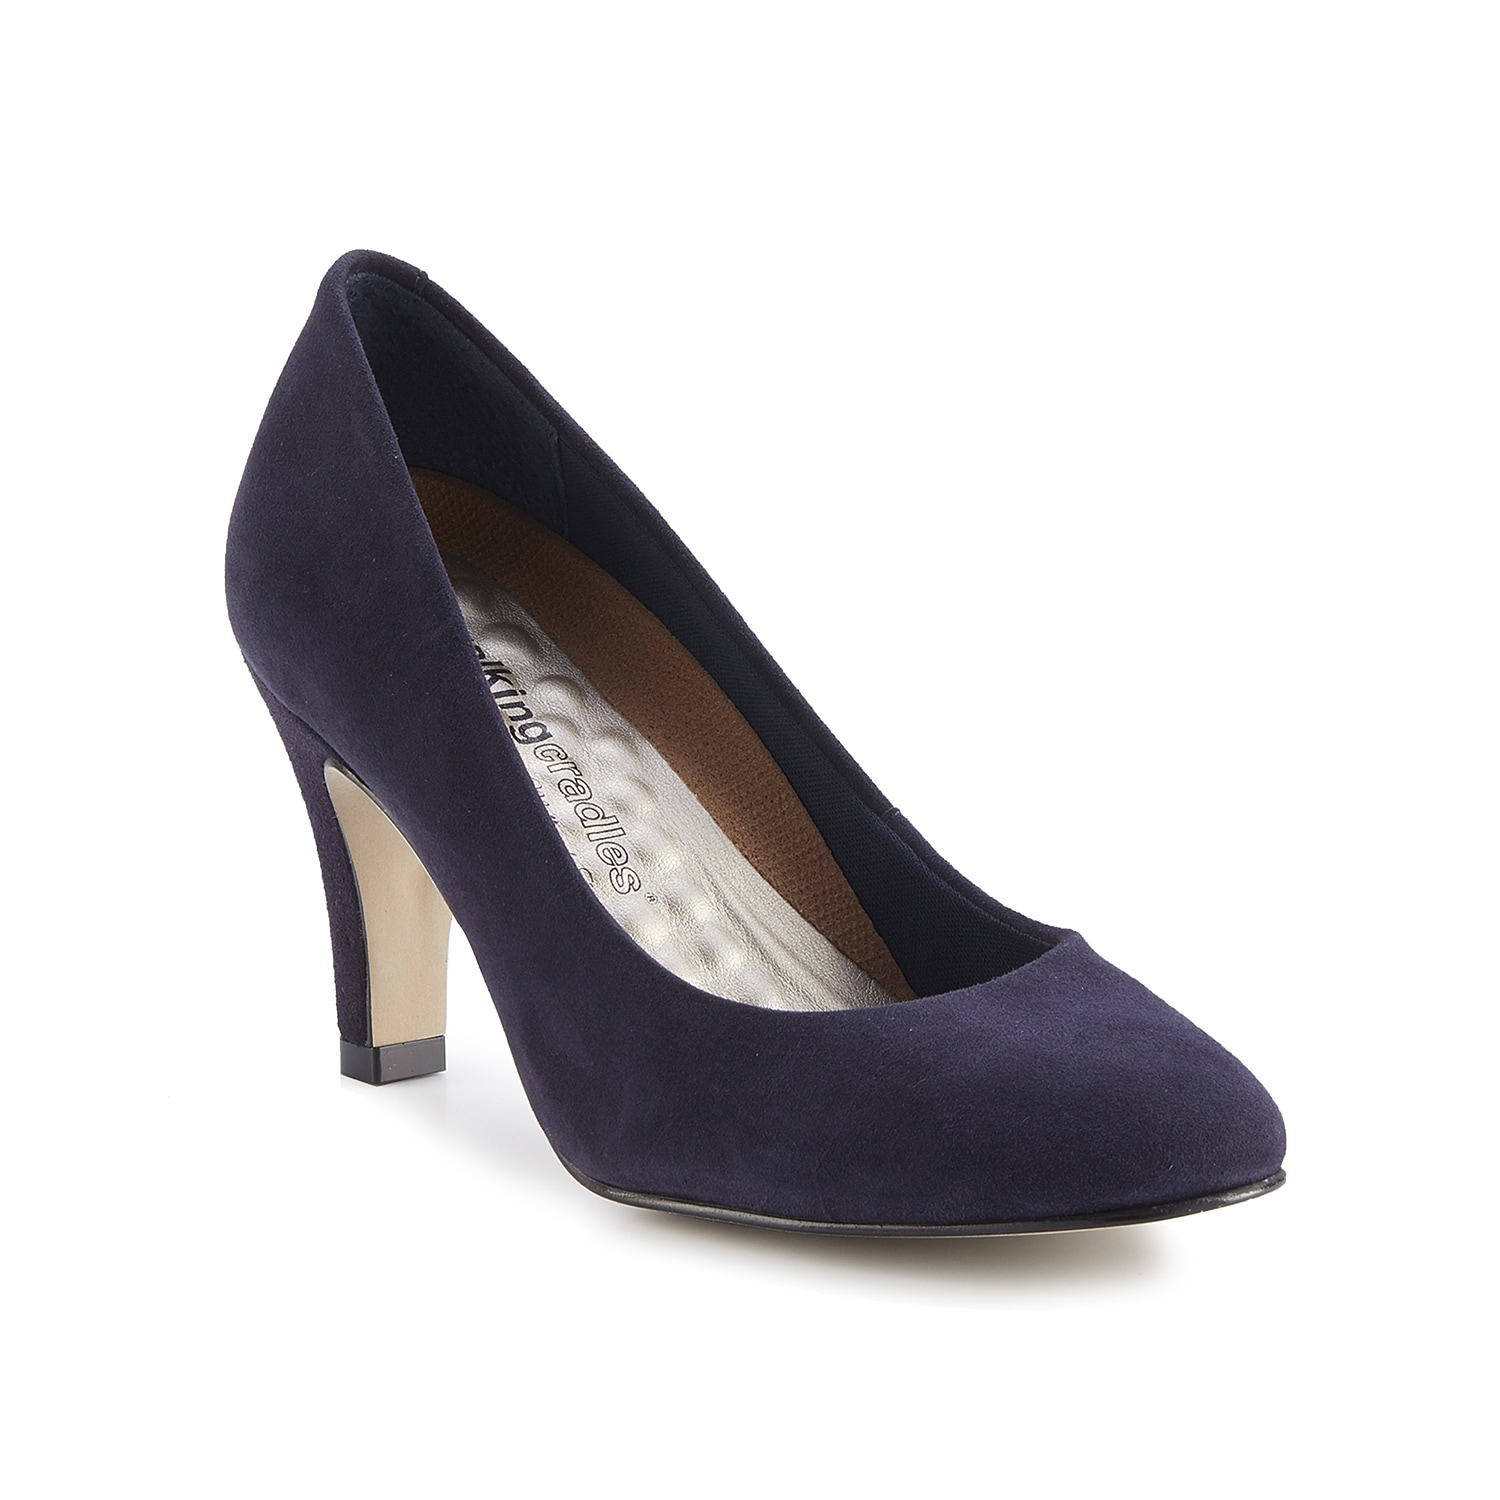 Show off your classic side with the Frances pump from Walking Cradles. A Tiny Pillows footbed keeps you supported from work to an elegant evening out.